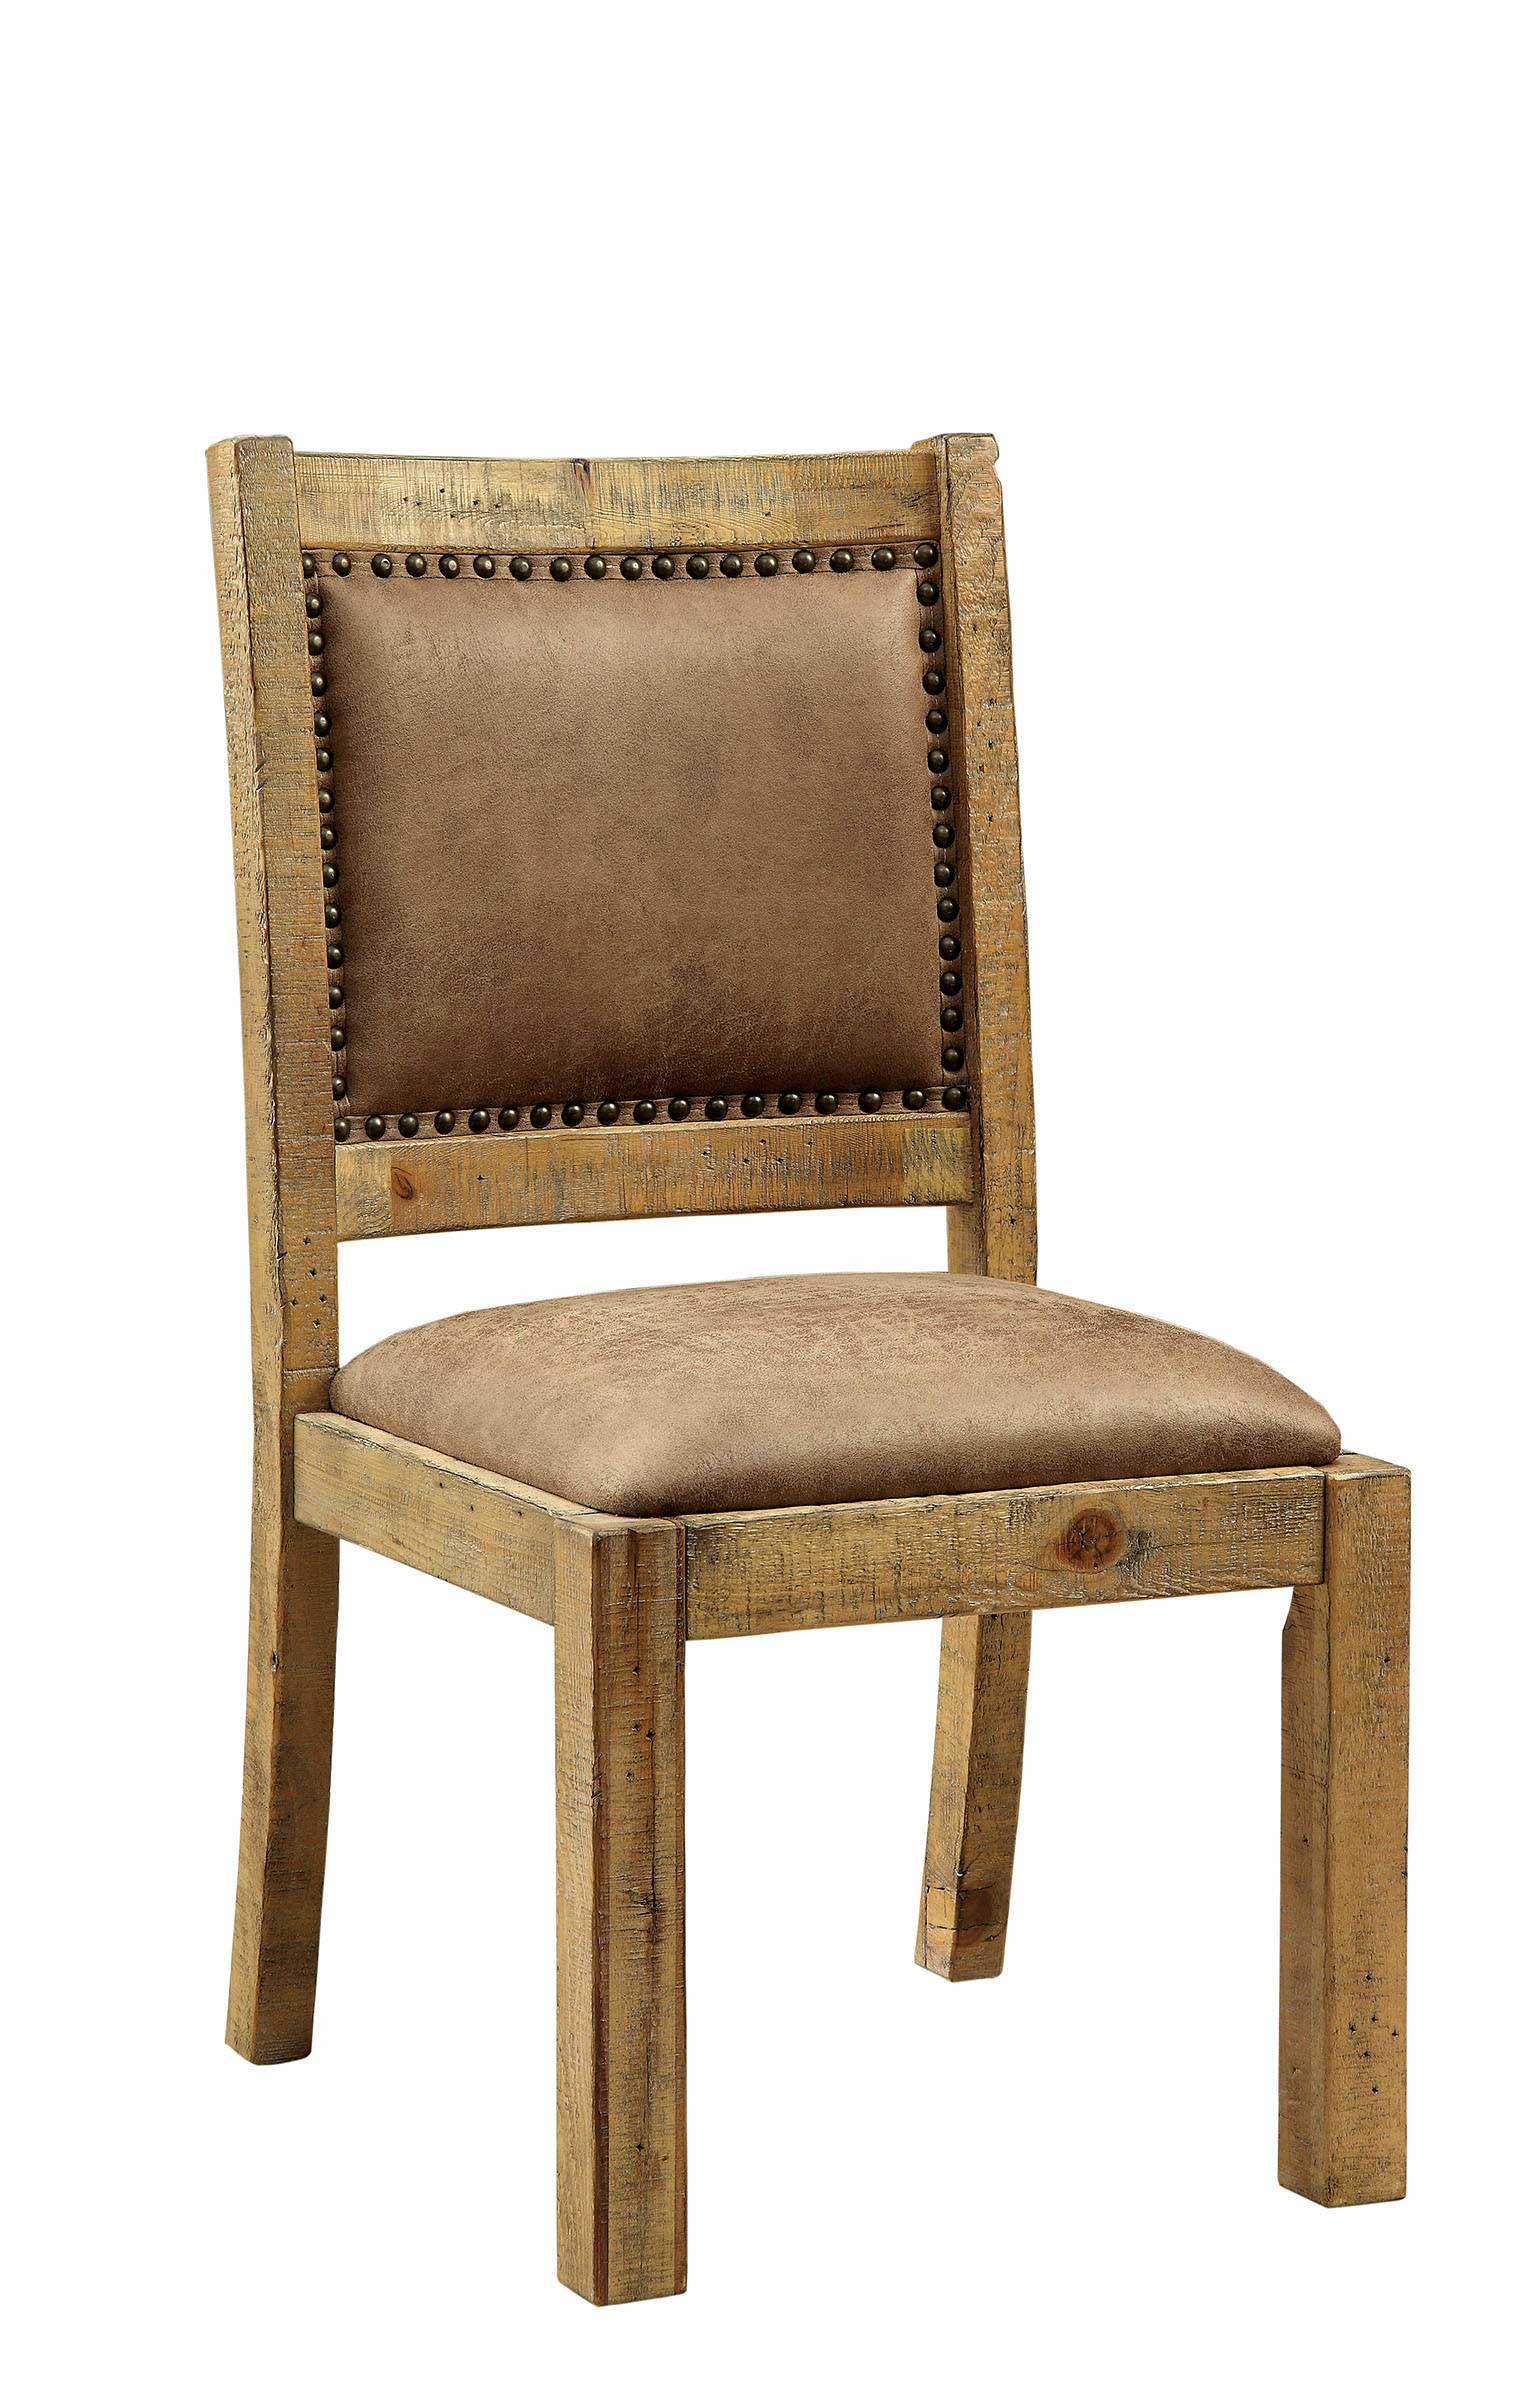 0293fc4d513c 2 Furniture of America Gianna Side Chairs | The Classy Home